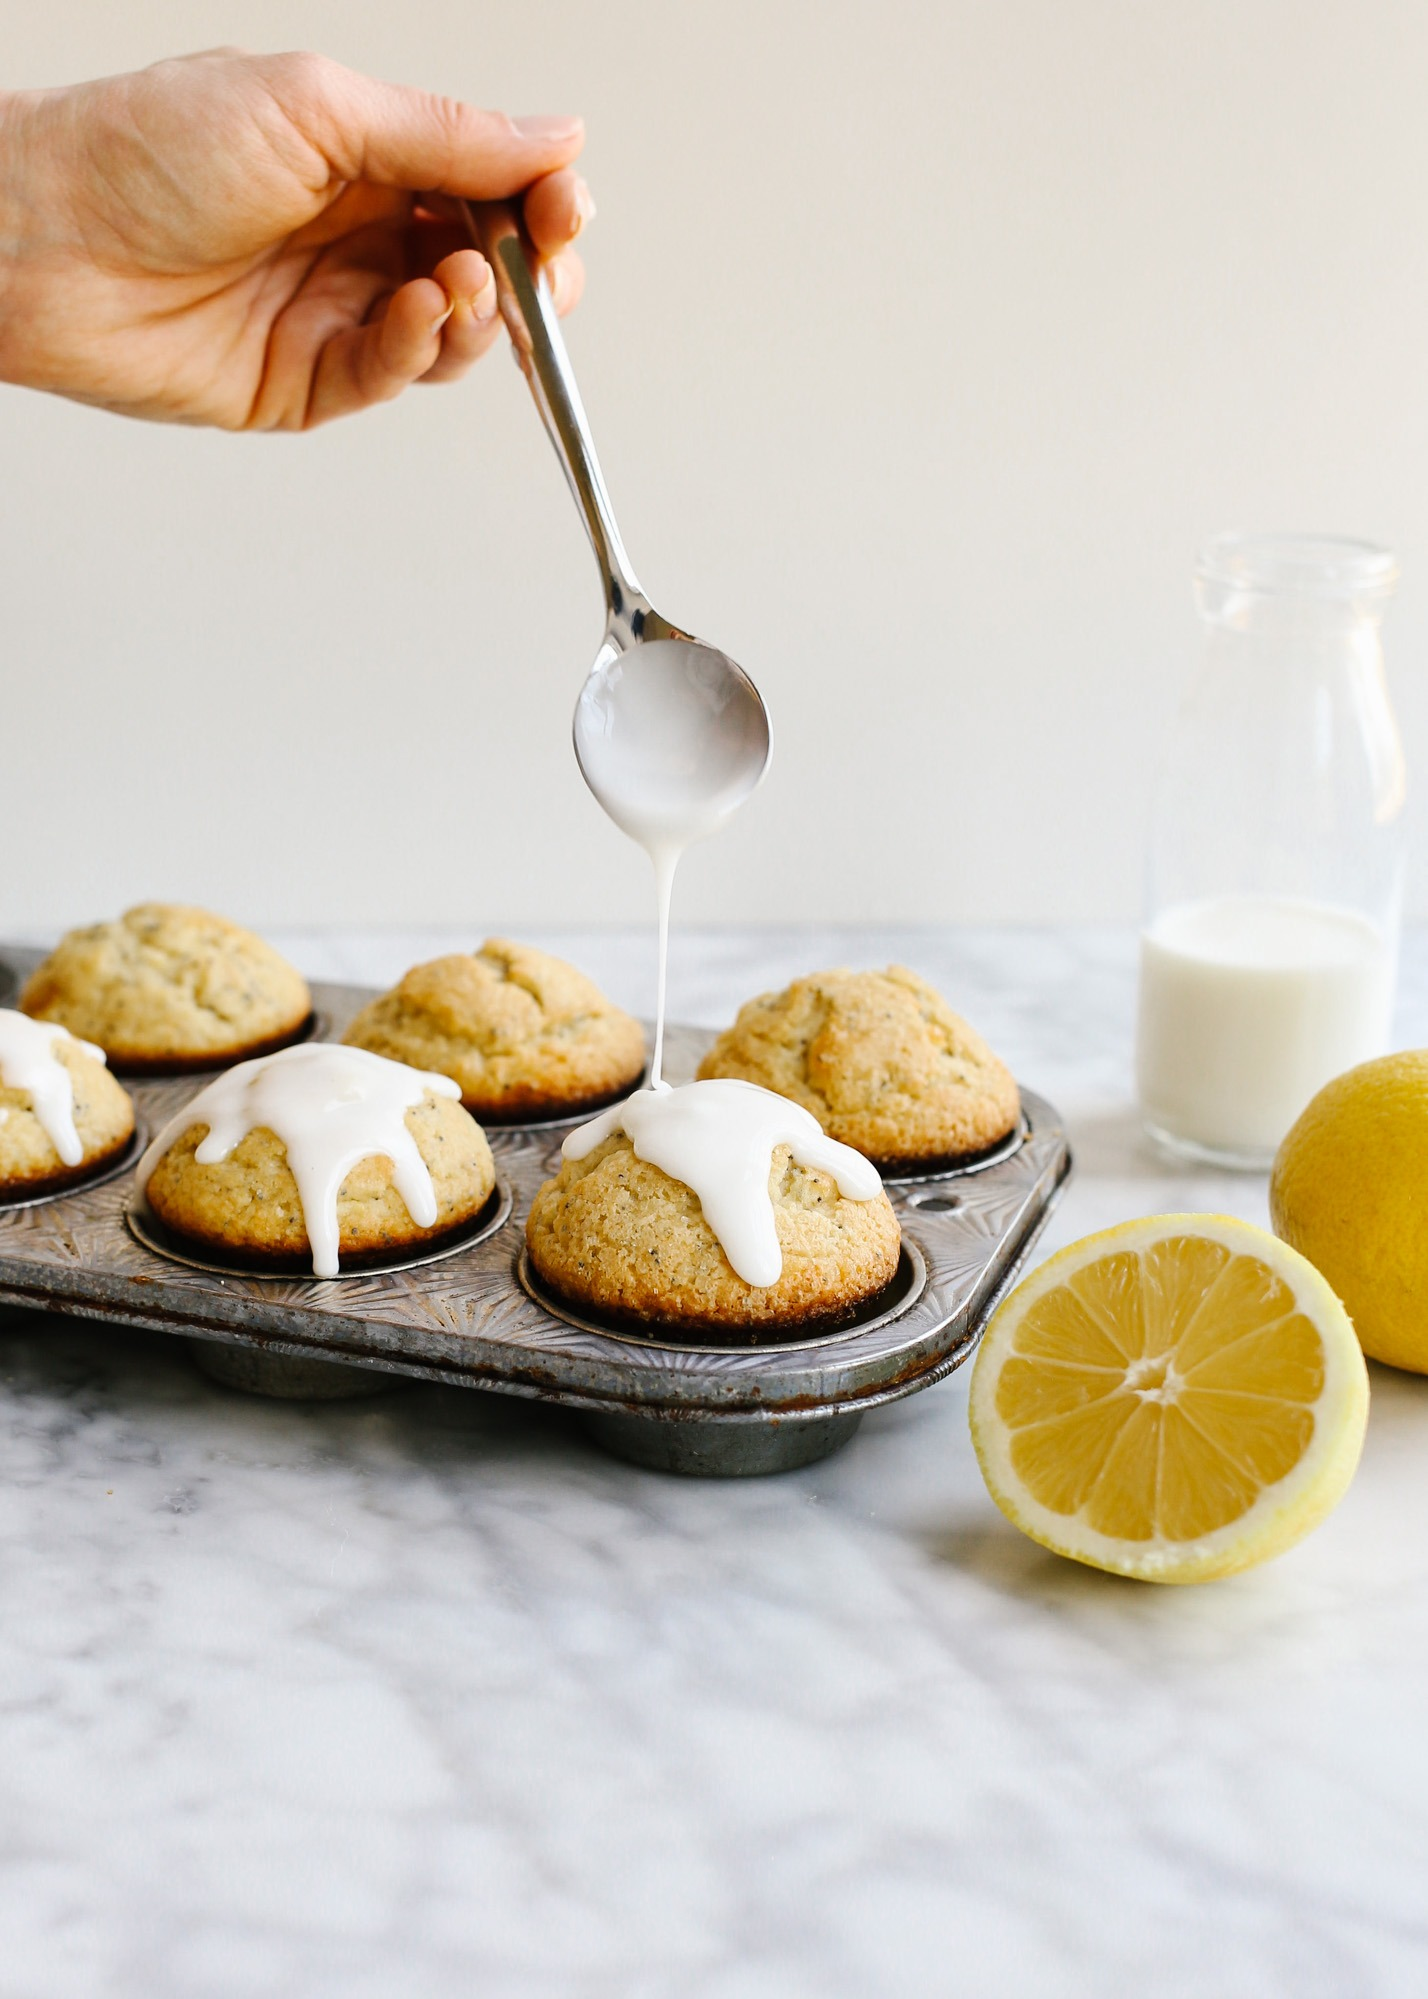 Lemon Poppy Seed Muffins by Wood and Spoon blog. These are light and fluffy homemade butter muffins scented with fresh lemon zest and juice. Poppy seeds throughout add flavor and texture and a simple confectioner's sugar glaze icing on top adds extra sweet and tang. Learn how to make these easy breakfast and brunch treats for a crowd on thewoodandspoon.com